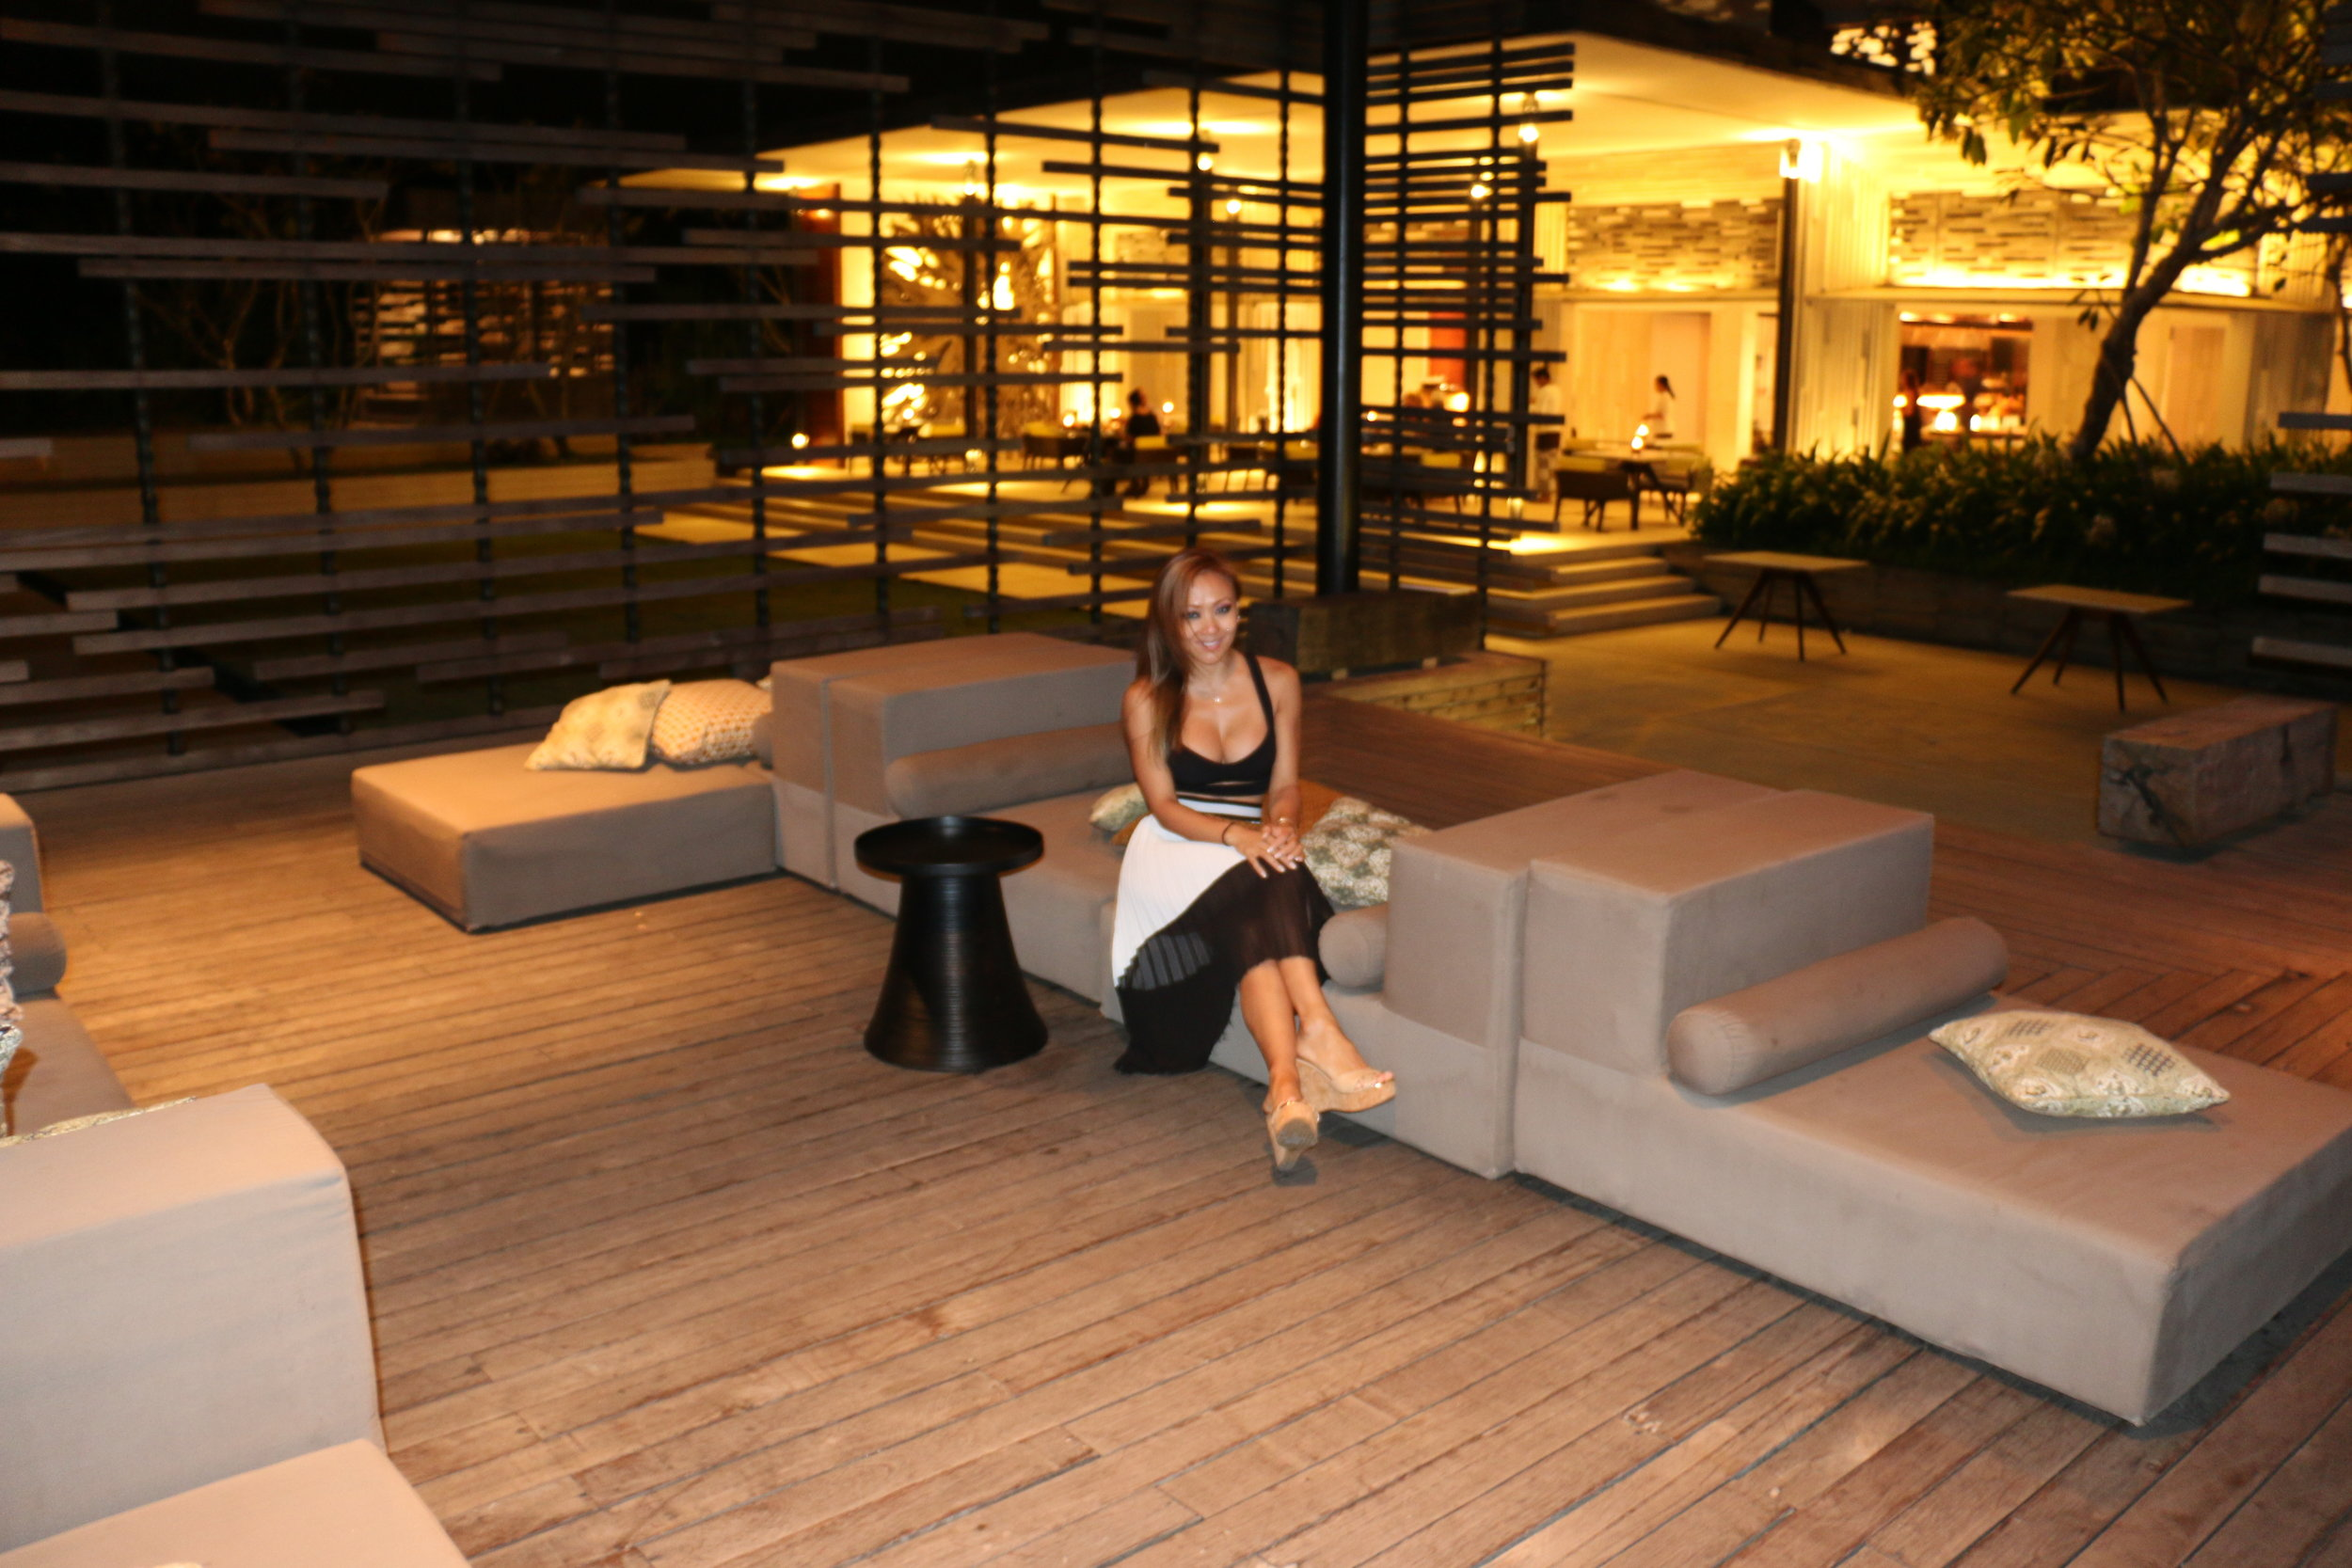 The lounge at night, nice but not quite the same as when there is some daylight.